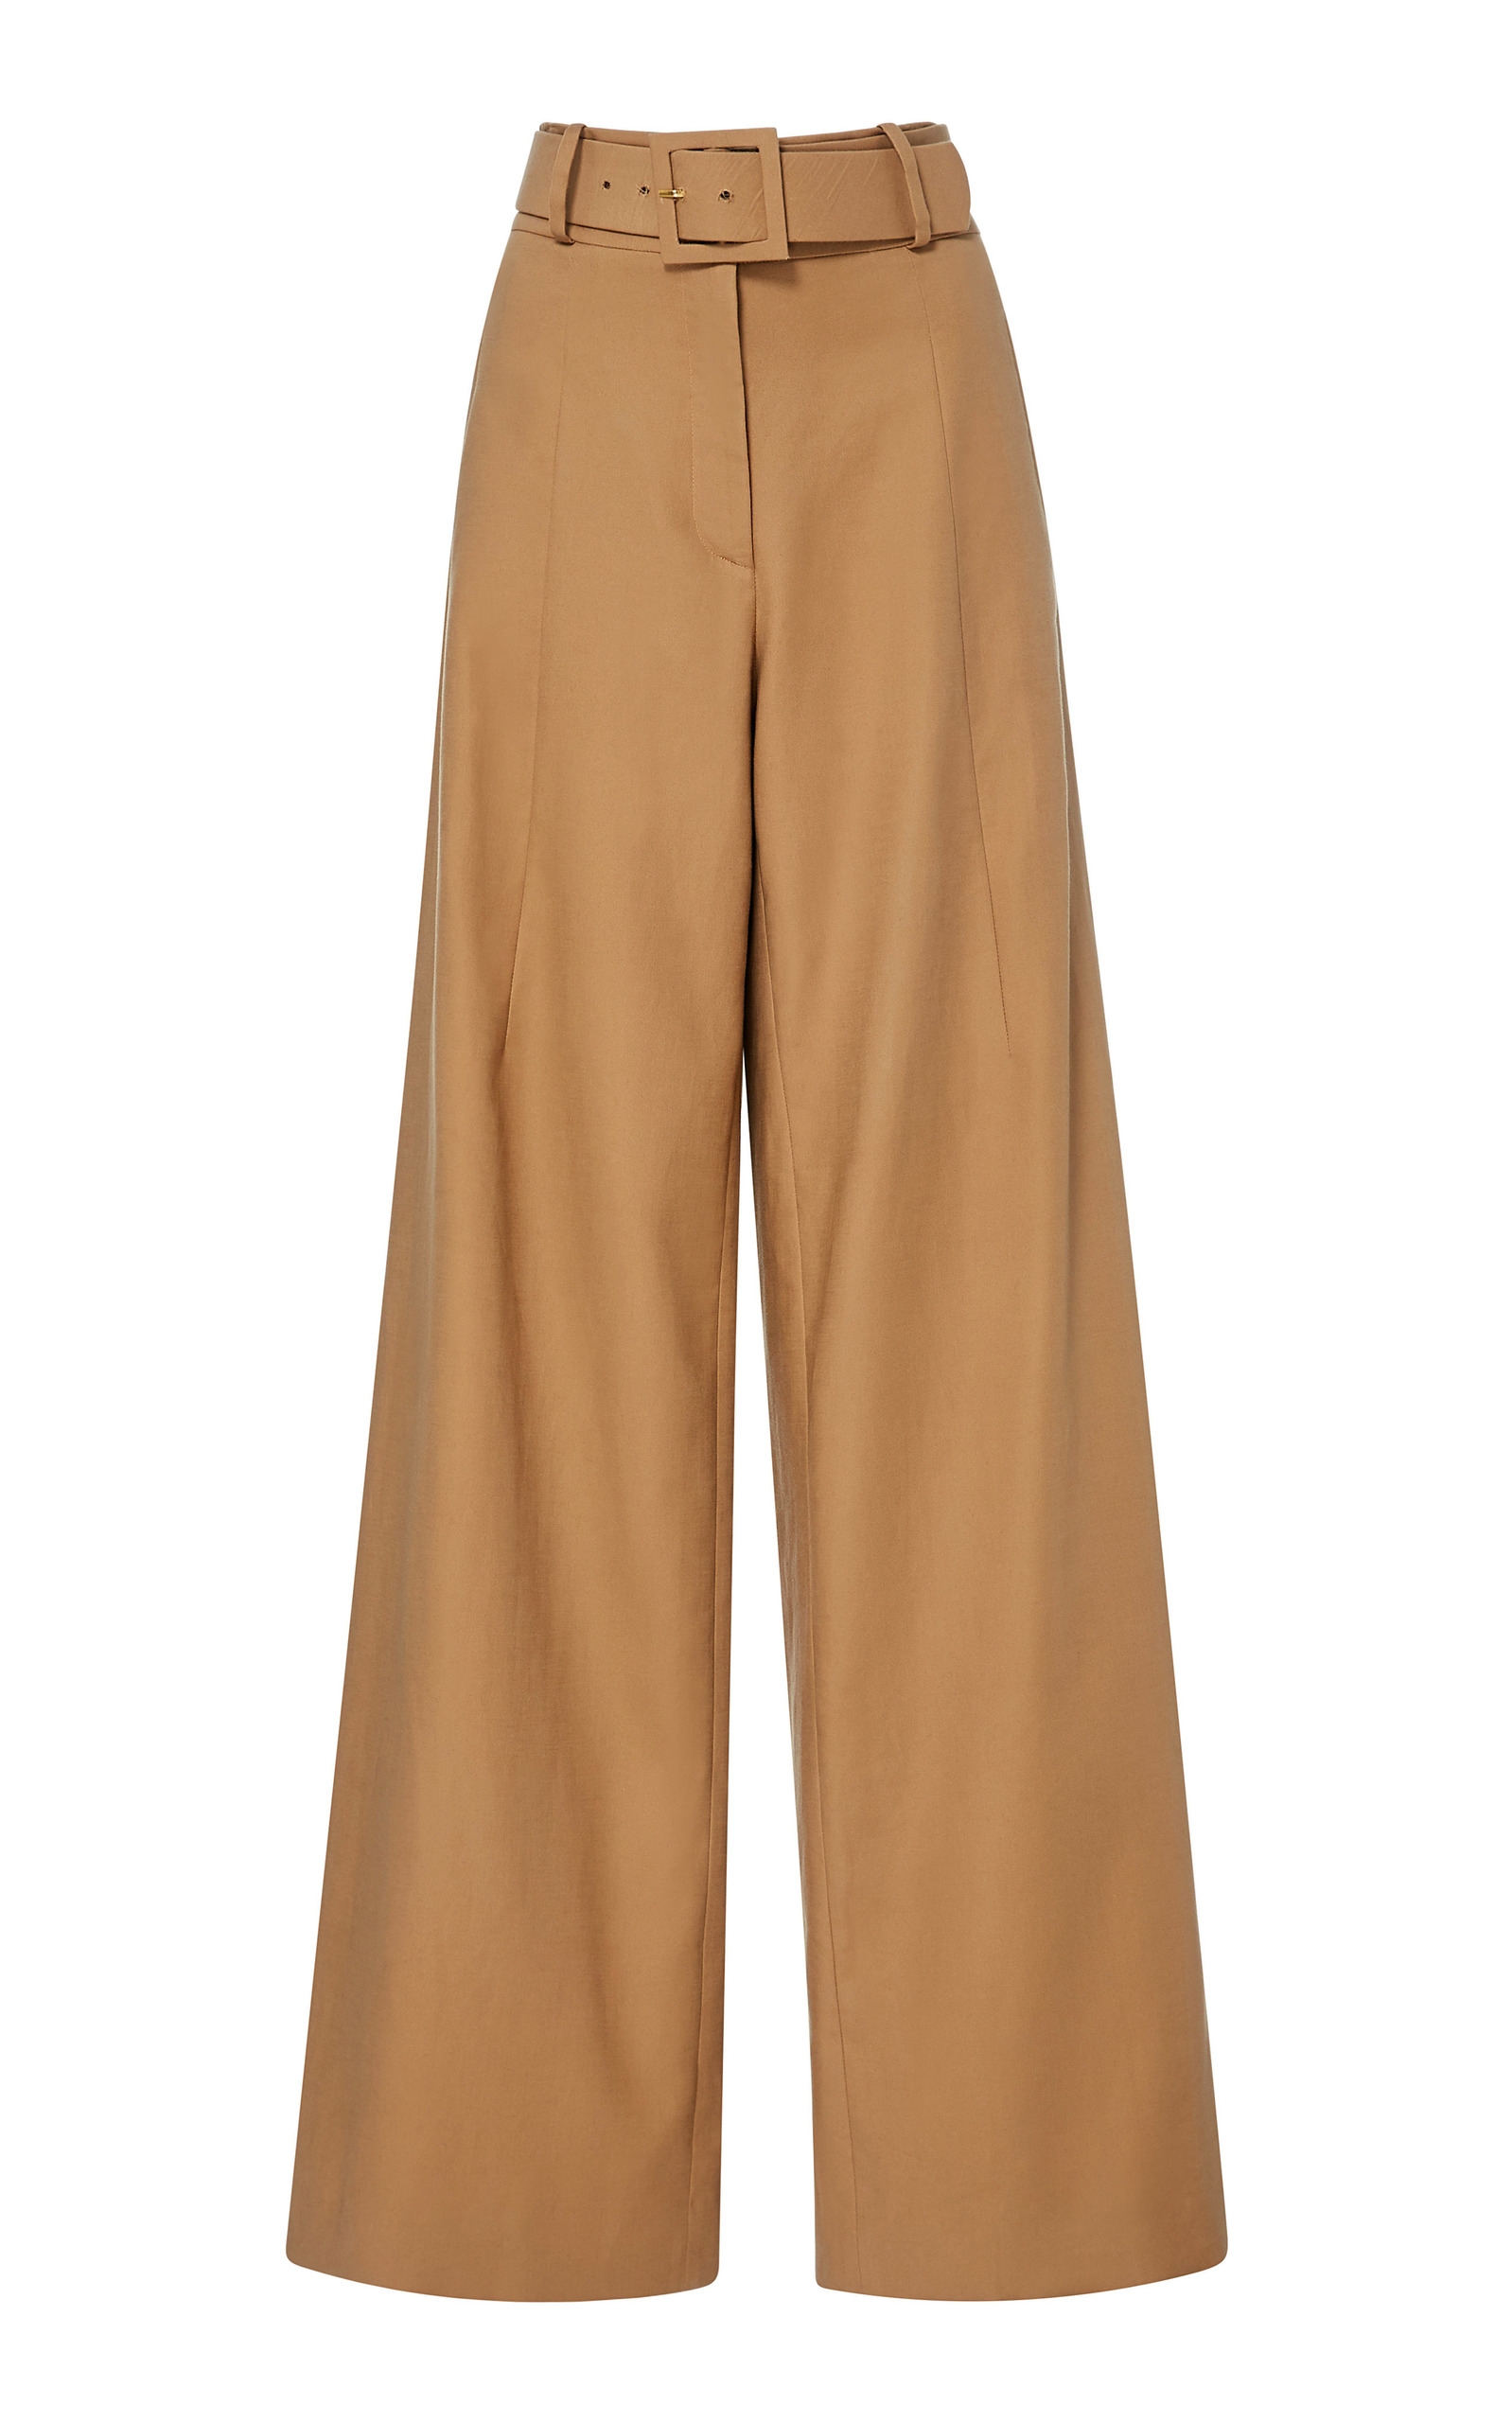 High Rise Wide Leg Cotton Blend Trousers - Womens - Tan Oscar De La Renta Get Authentic Clearance Professional Sale Buy Cheap Wide Range Of Natural And Freely s4oYEFJu1